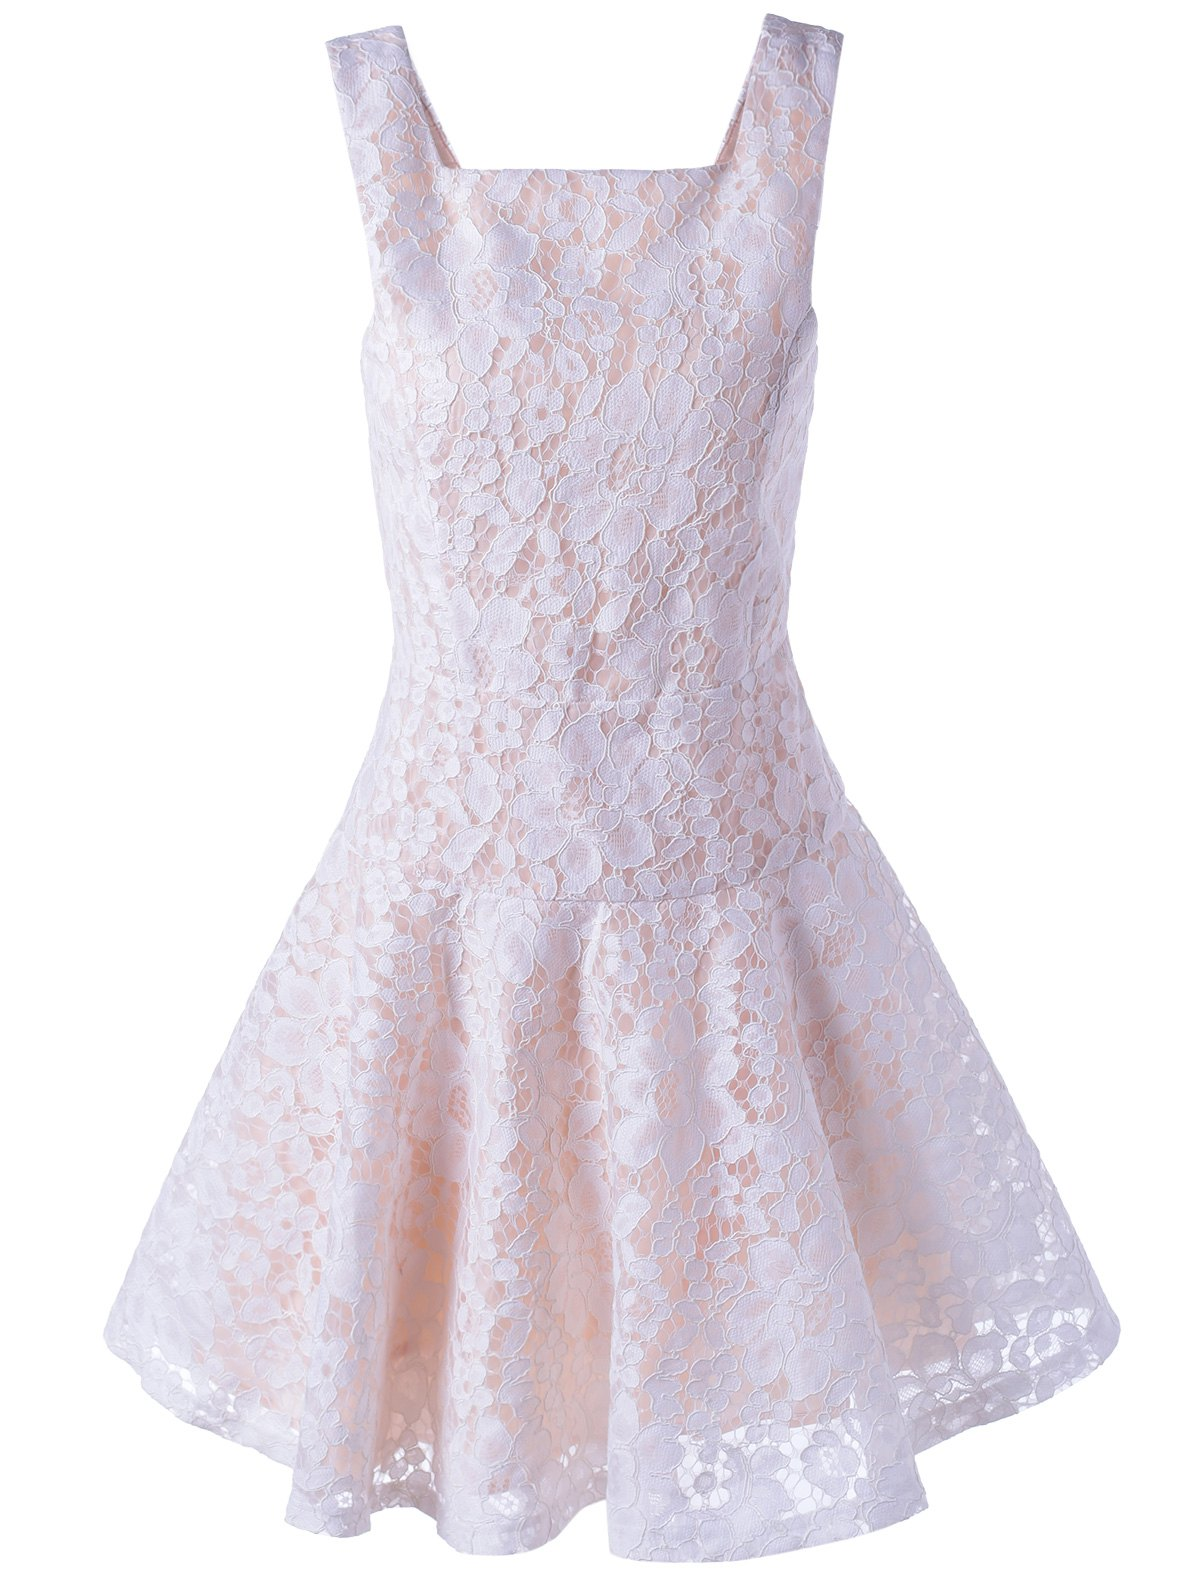 Chic Sleeveless Lace Short Skater Cocktail Party Dress